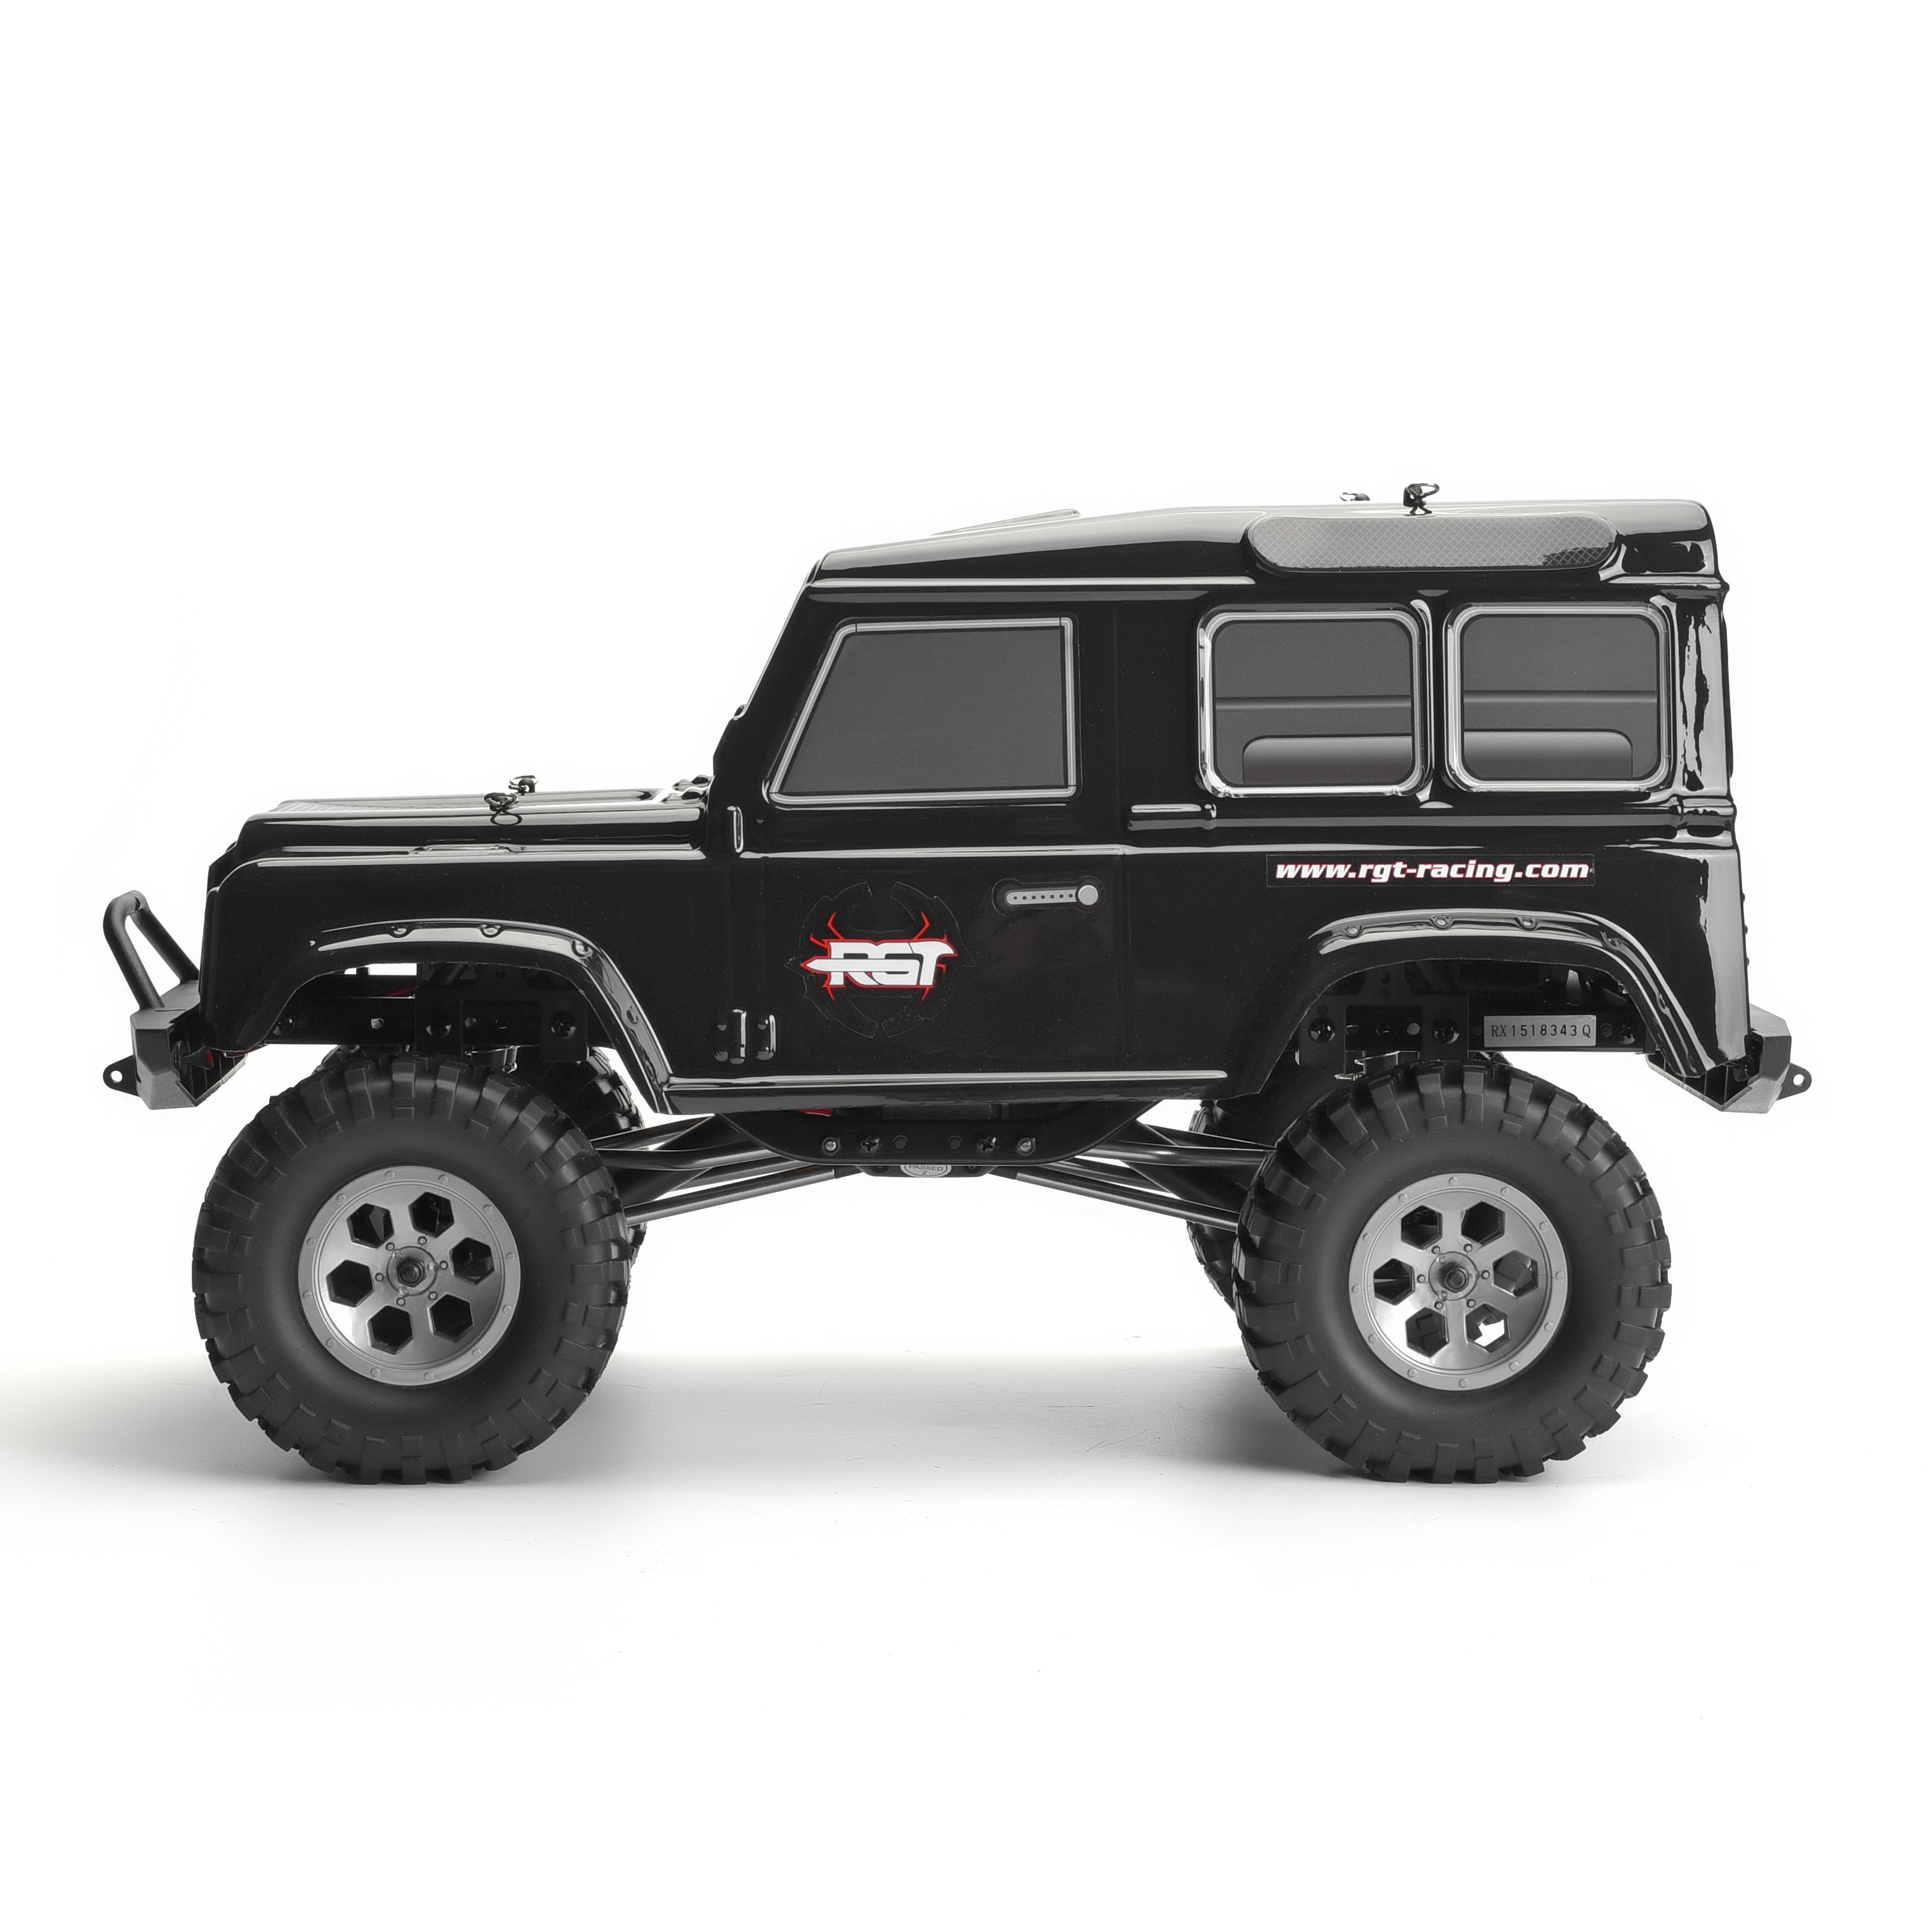 RGT Electric Rc Car 1/10 Scale 4wd Off Road Monster Truck Rock ...